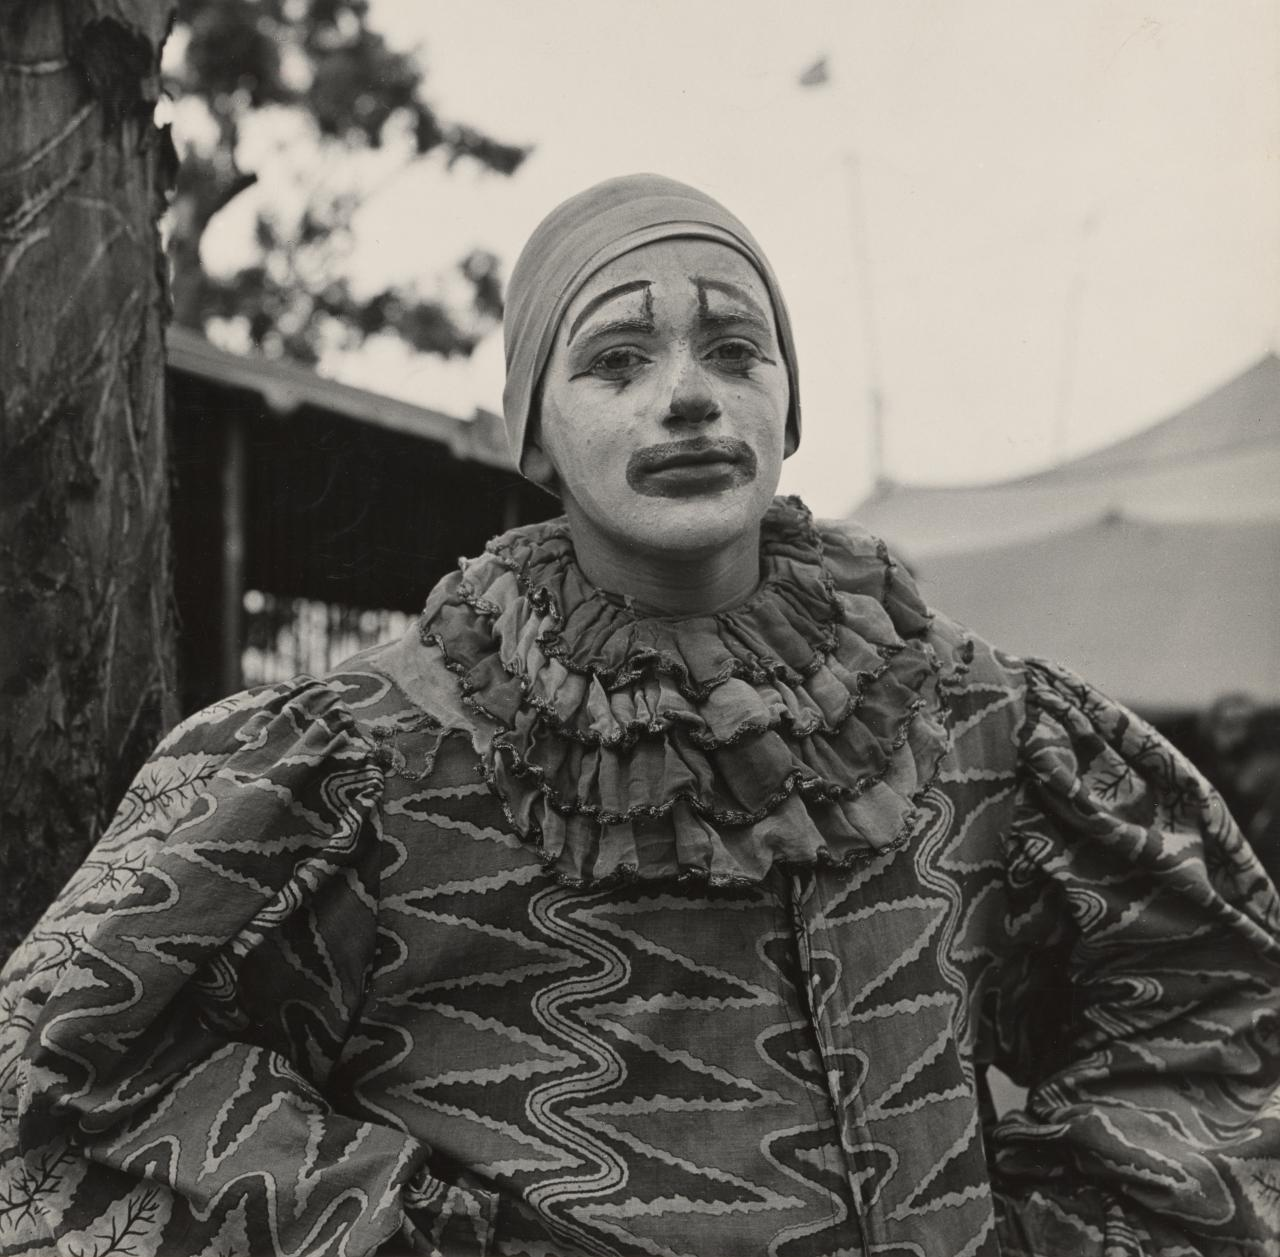 No title (Man dressed as a clown)